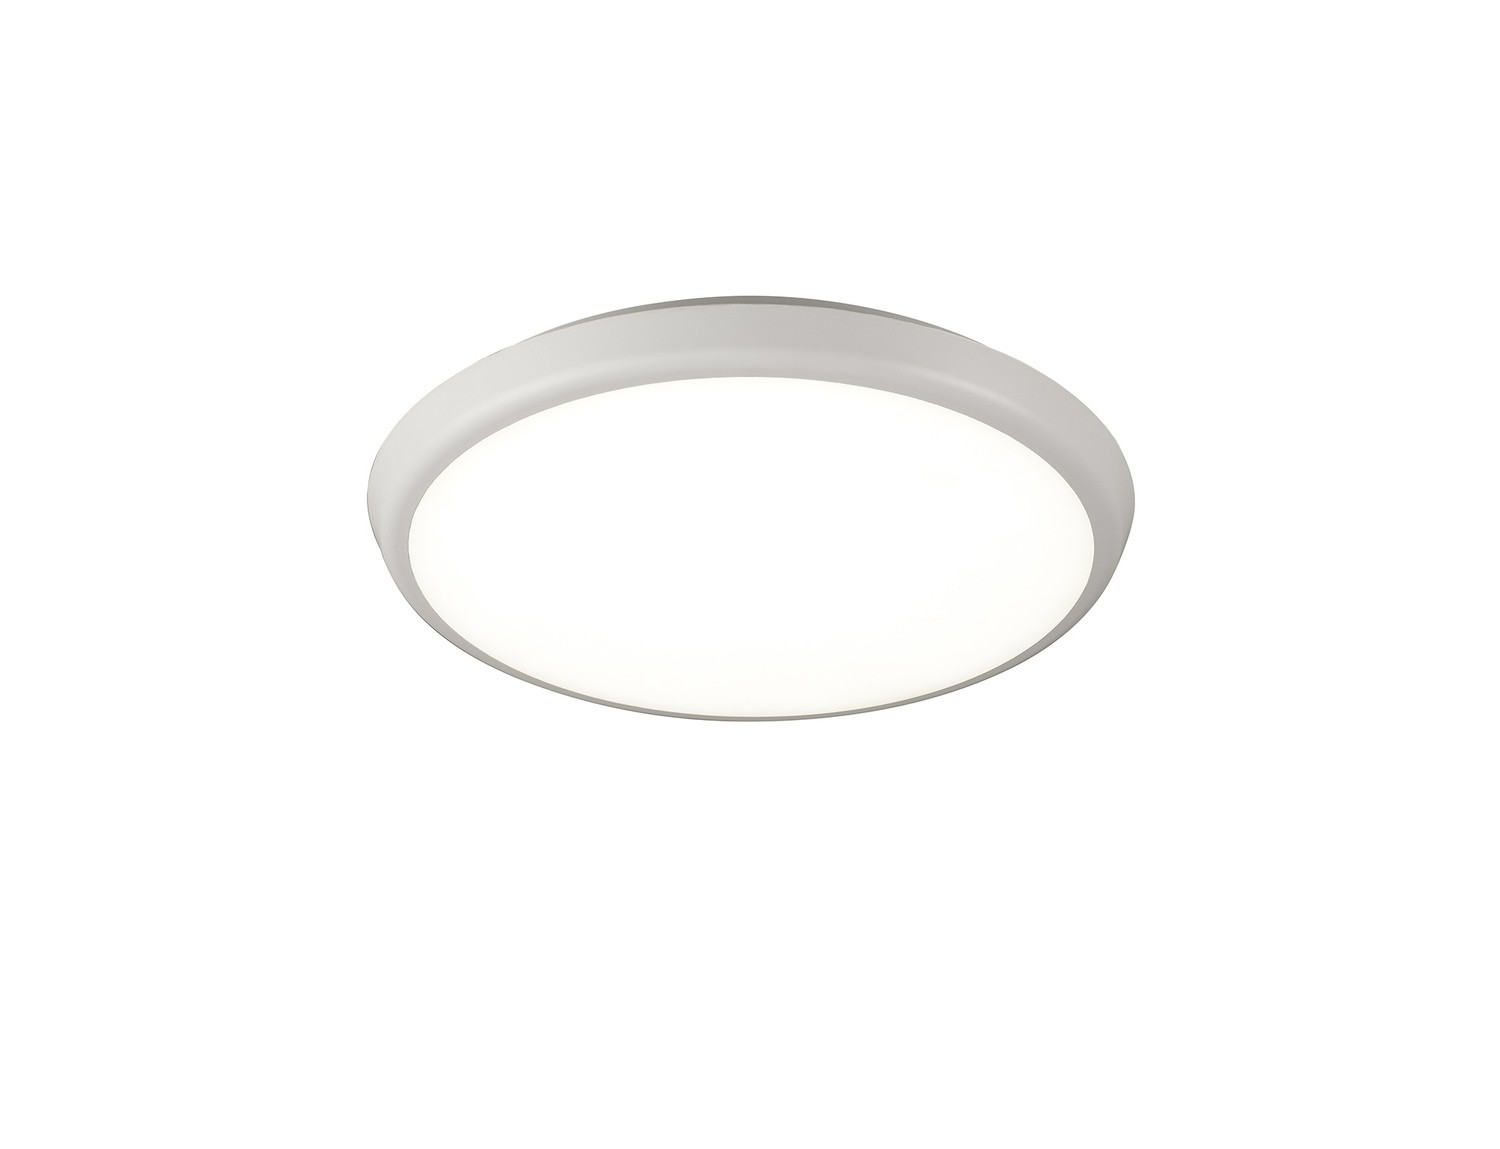 Aneto Ceiling, 30cm Round, 18W LED 4000K, 1700lm, IP65, White, 3yrs Warranty